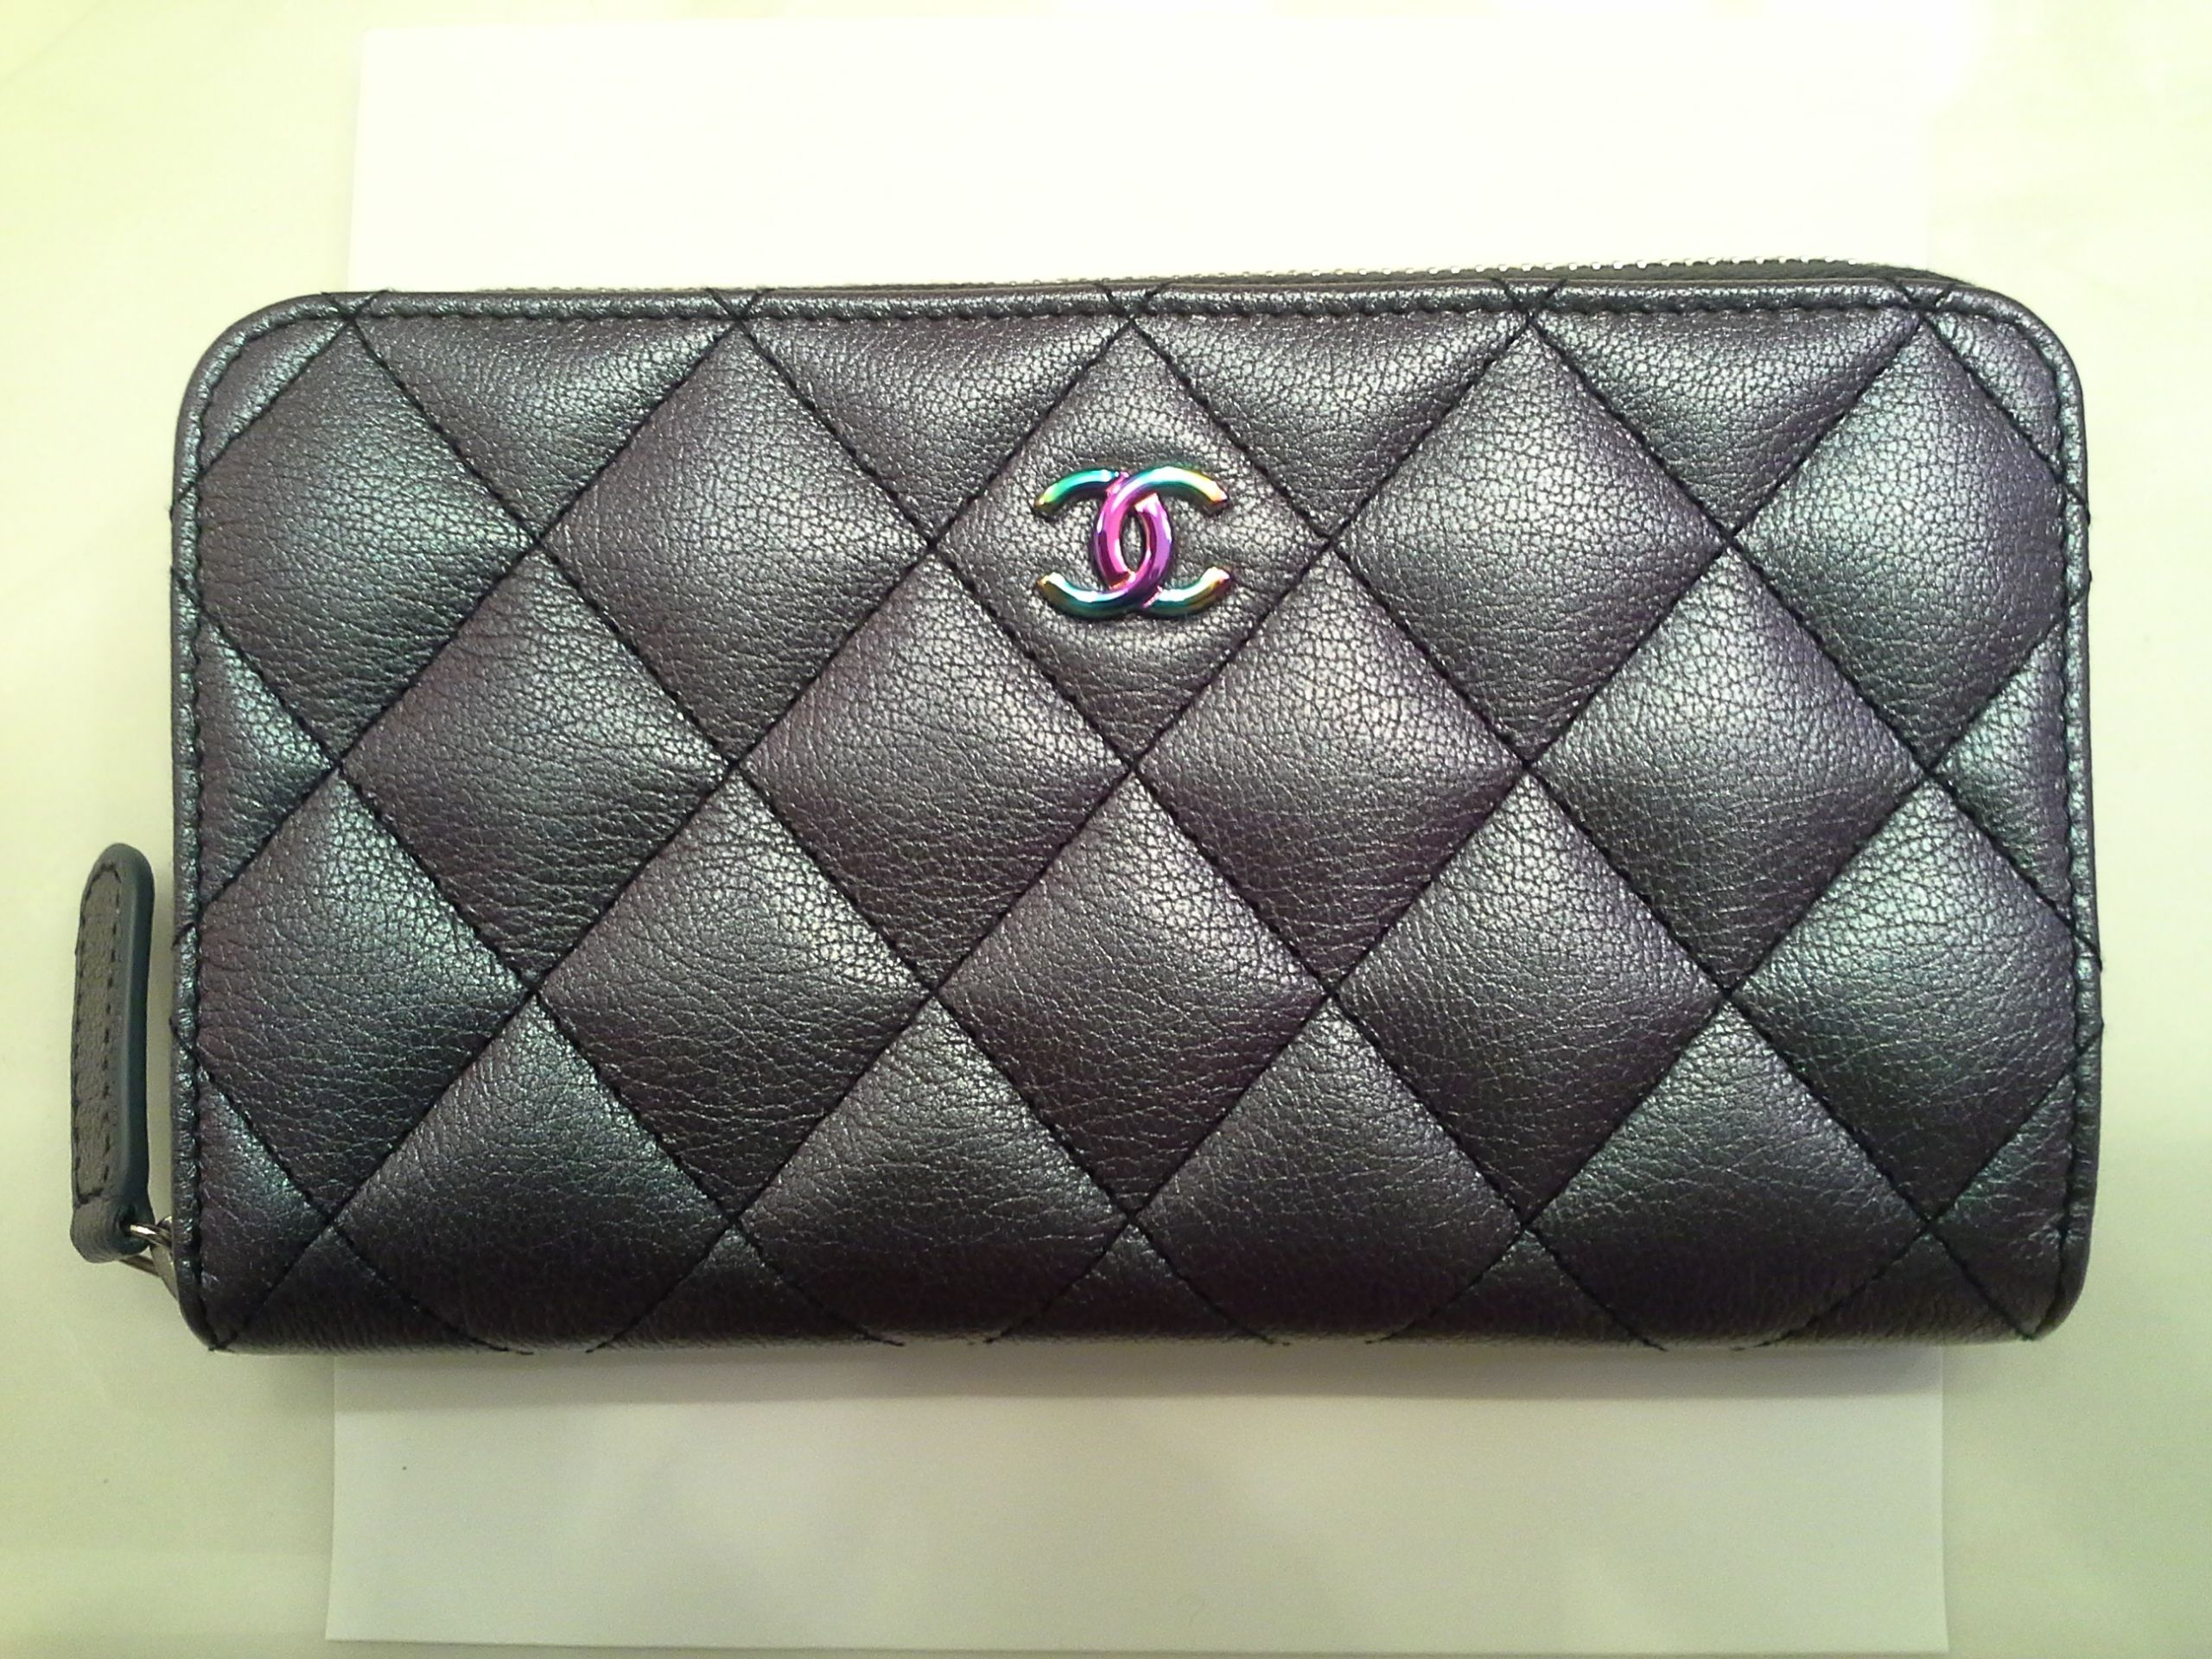 045916c461eb Chanel Iridescent Small Zip Wallet | My Handbags | Chanel cruise ...